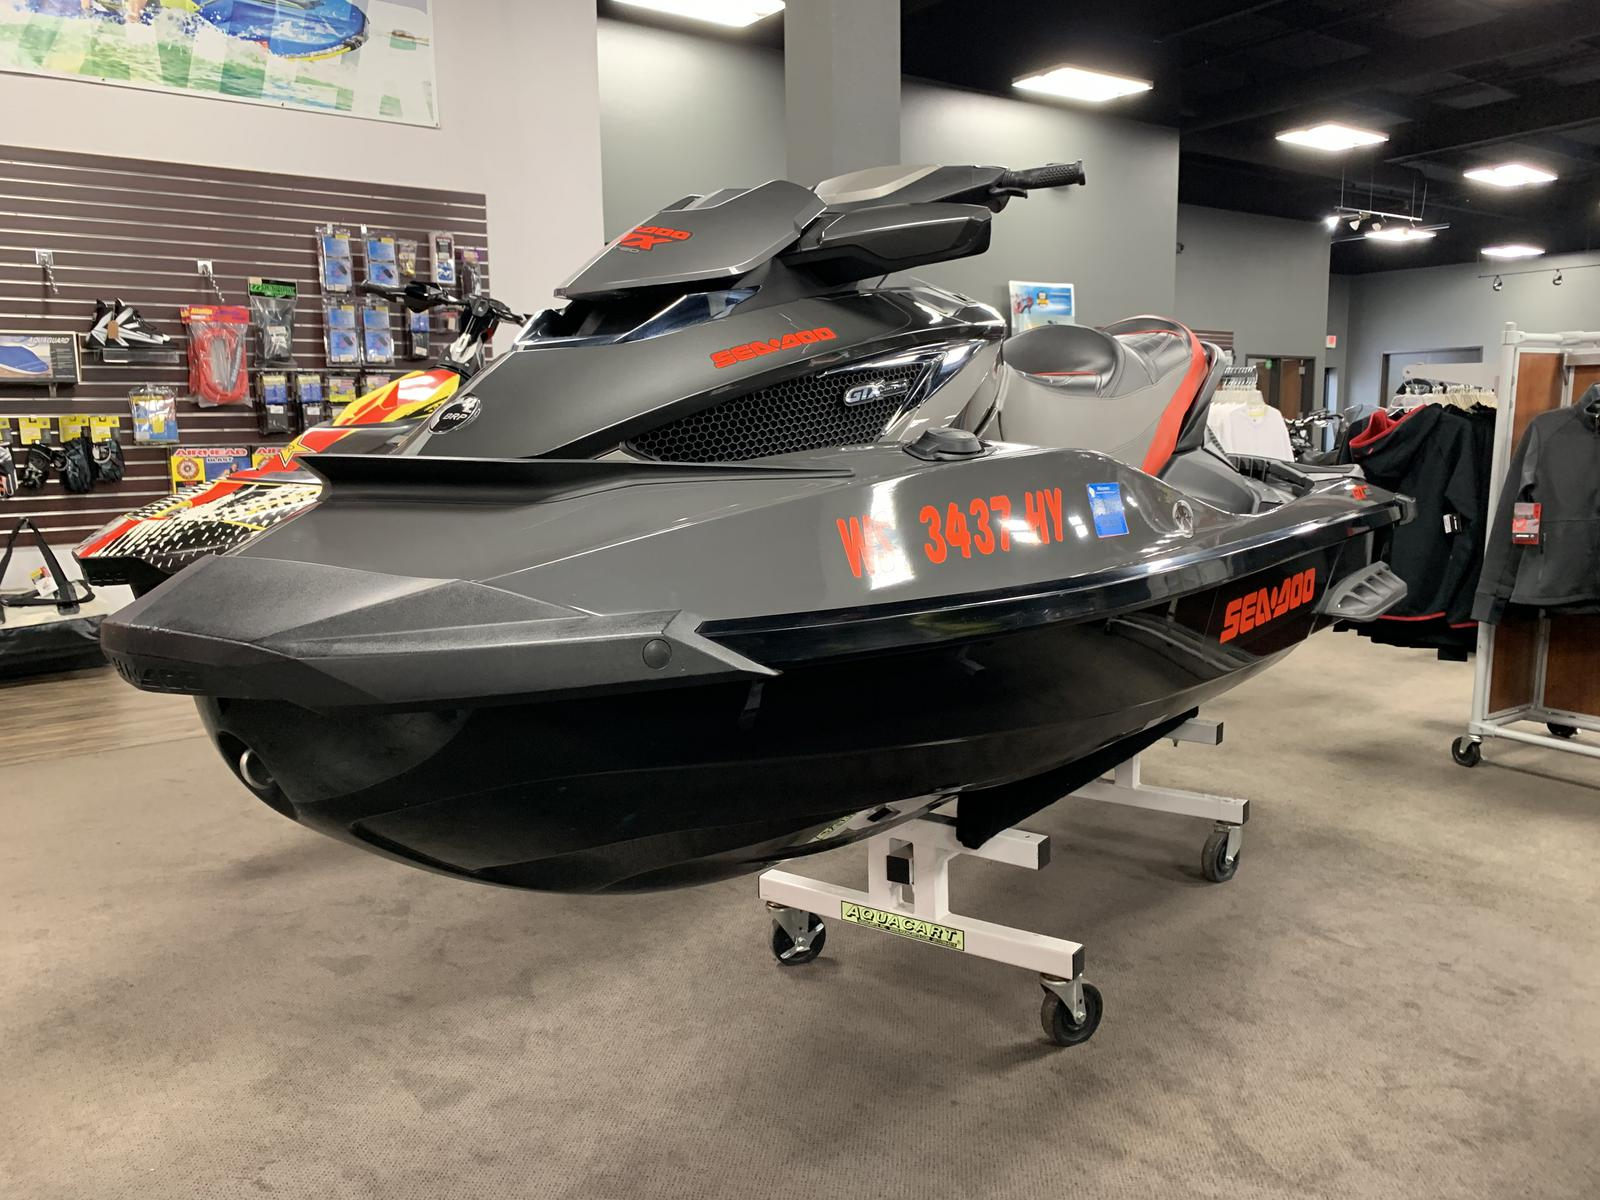 2013 Sea-Doo GTX IS LIMITED 260